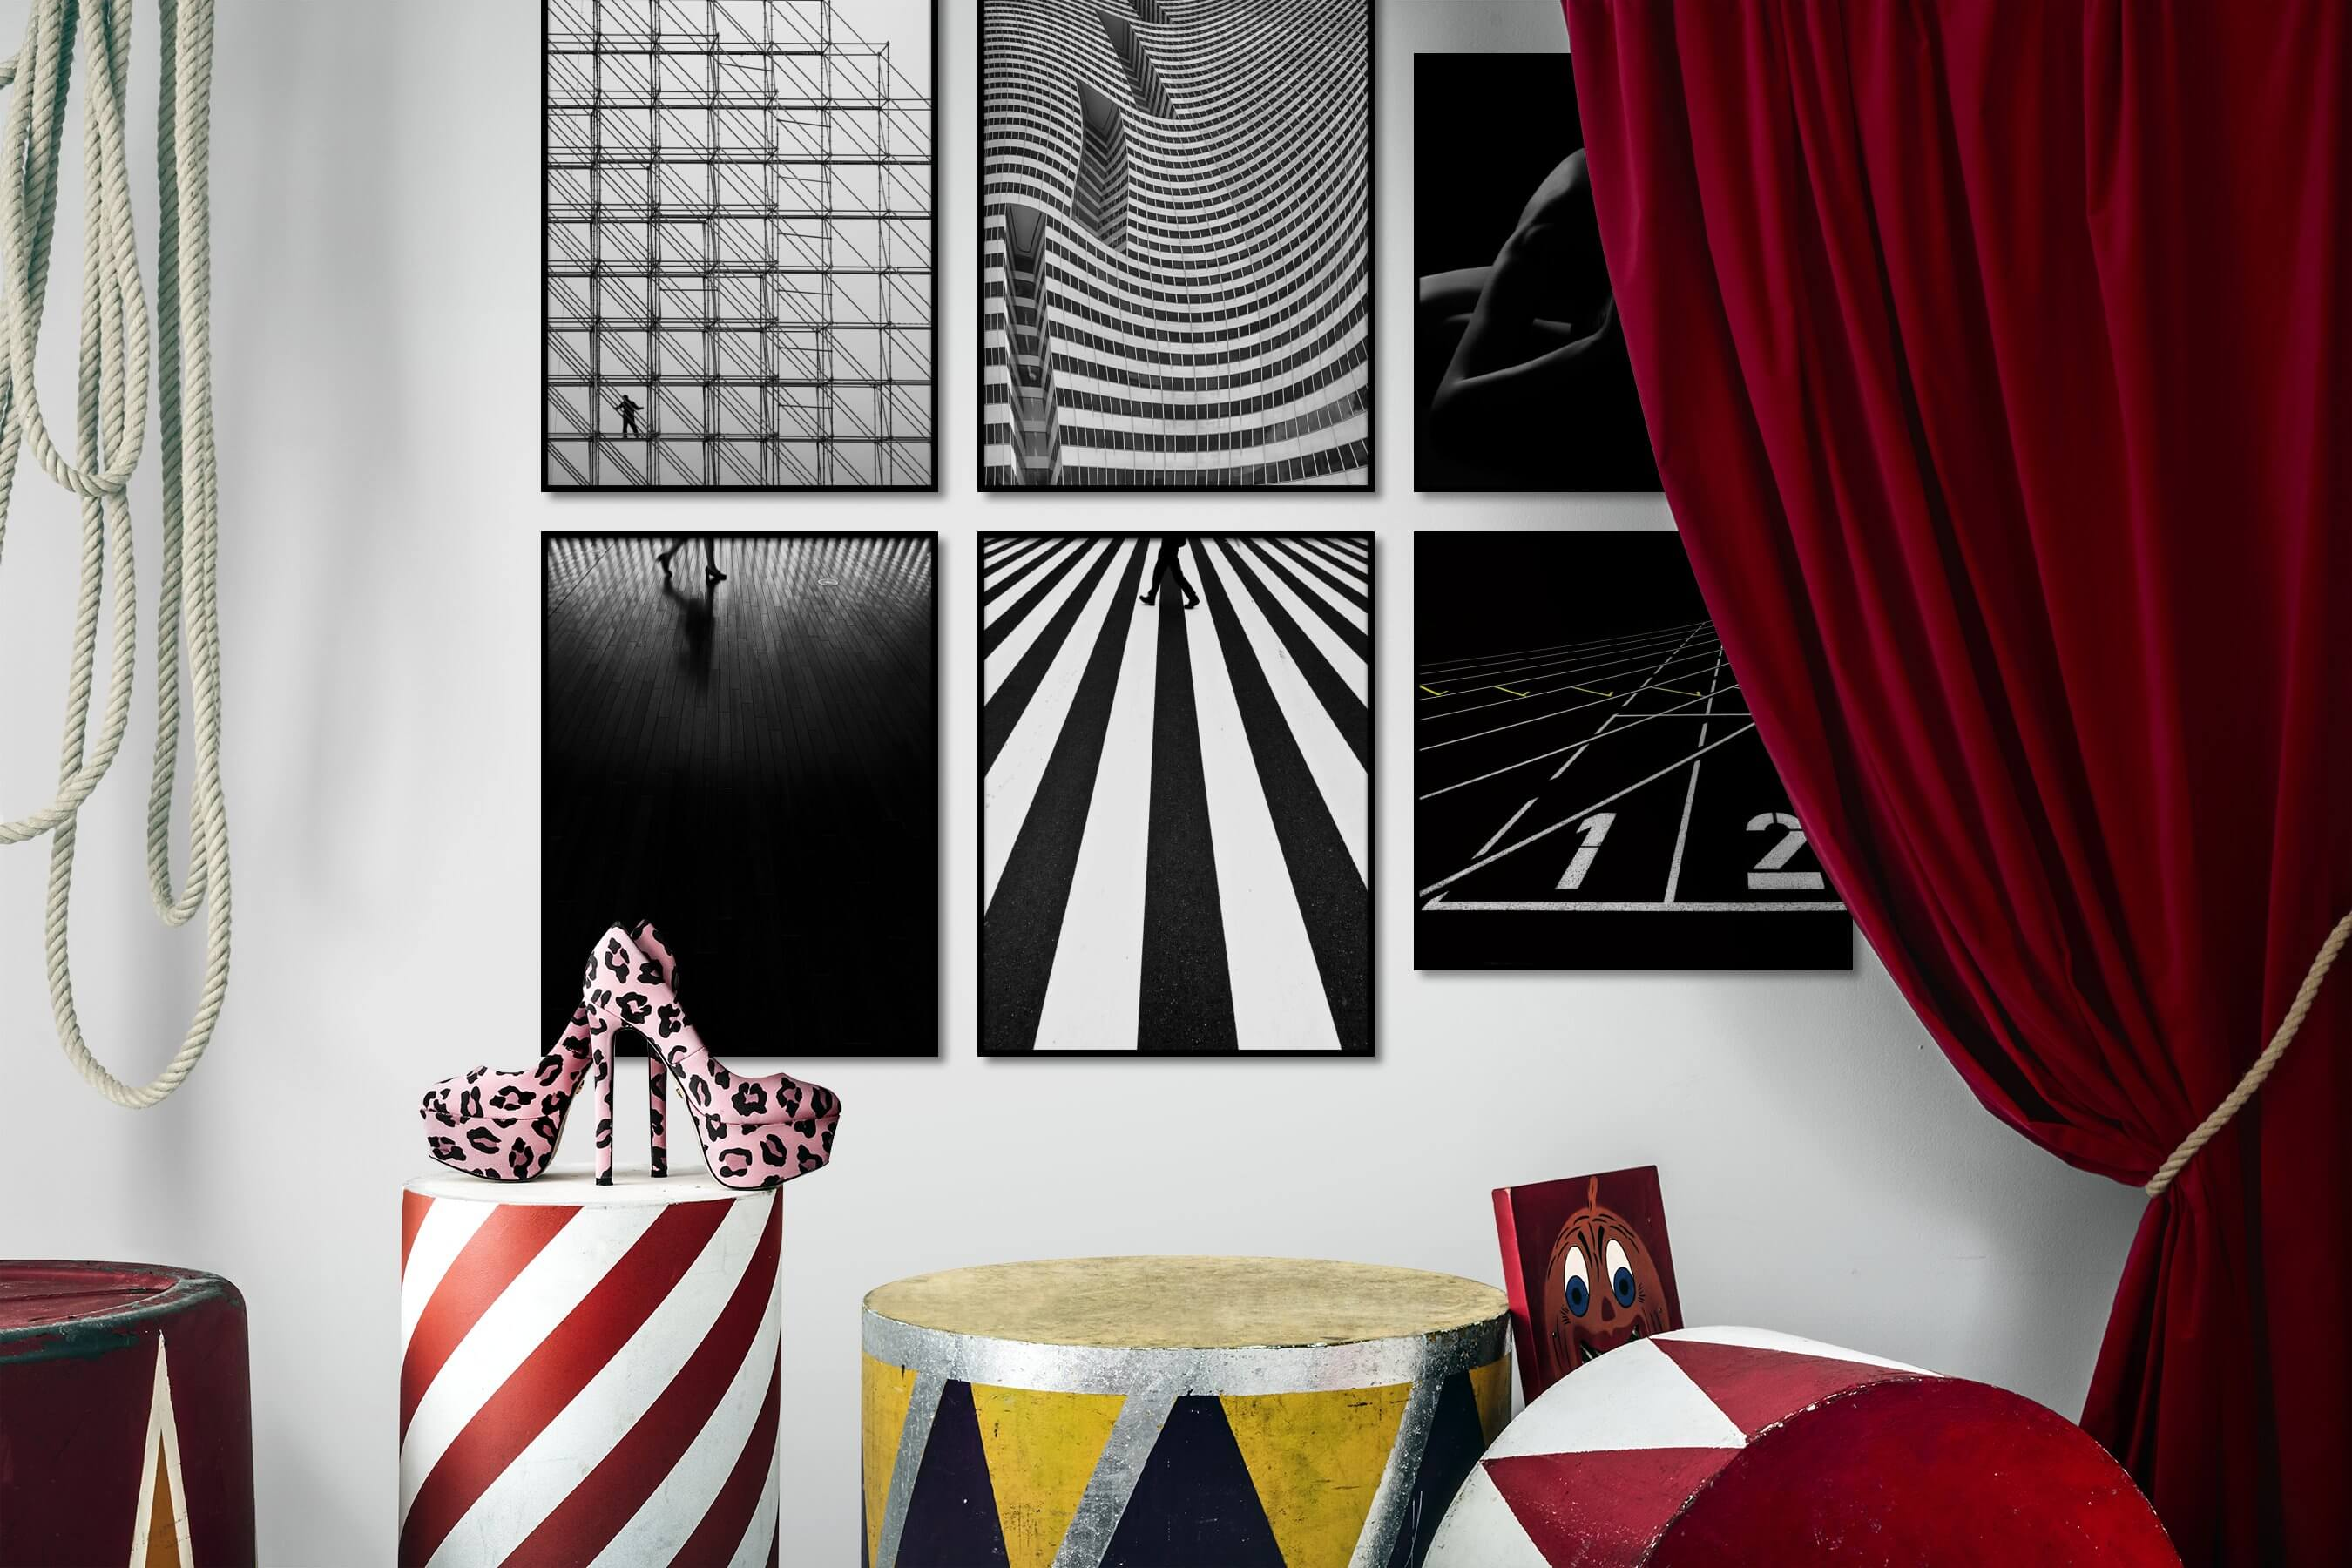 Gallery wall idea with six framed pictures arranged on a wall depicting Black & White, For the Moderate, For the Maximalist, City Life, Dark Tones, For the Minimalist, Artsy, and Fashion & Beauty